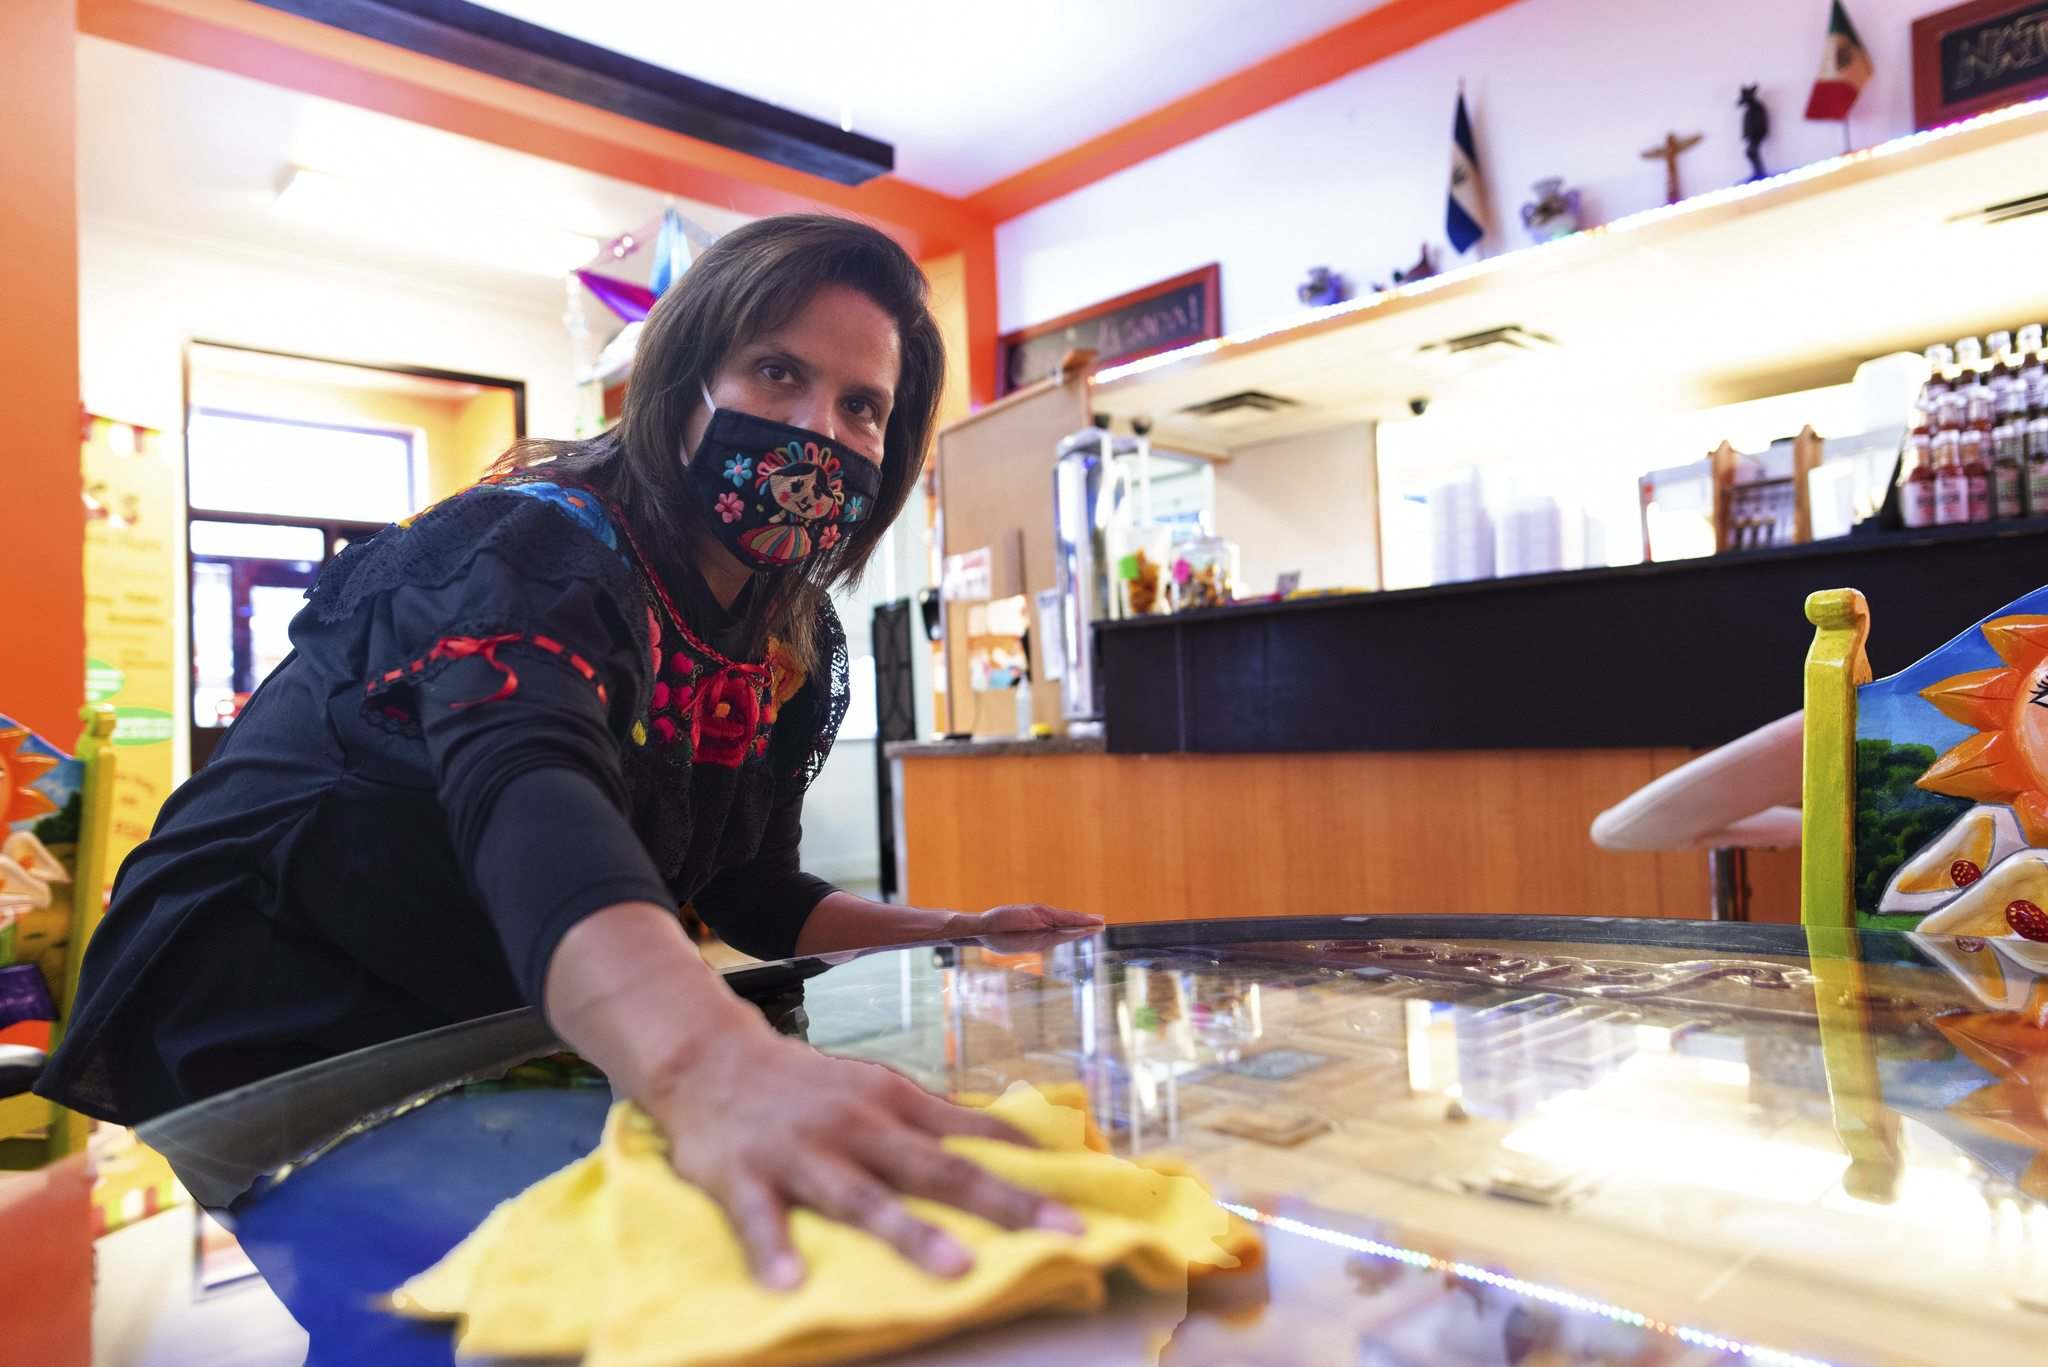 JESSE BOILY / WINNIPEG FREE PRESS</p><p>Mayra Dubon wipes down a table at JC Tacos and More on Thursday.</p>